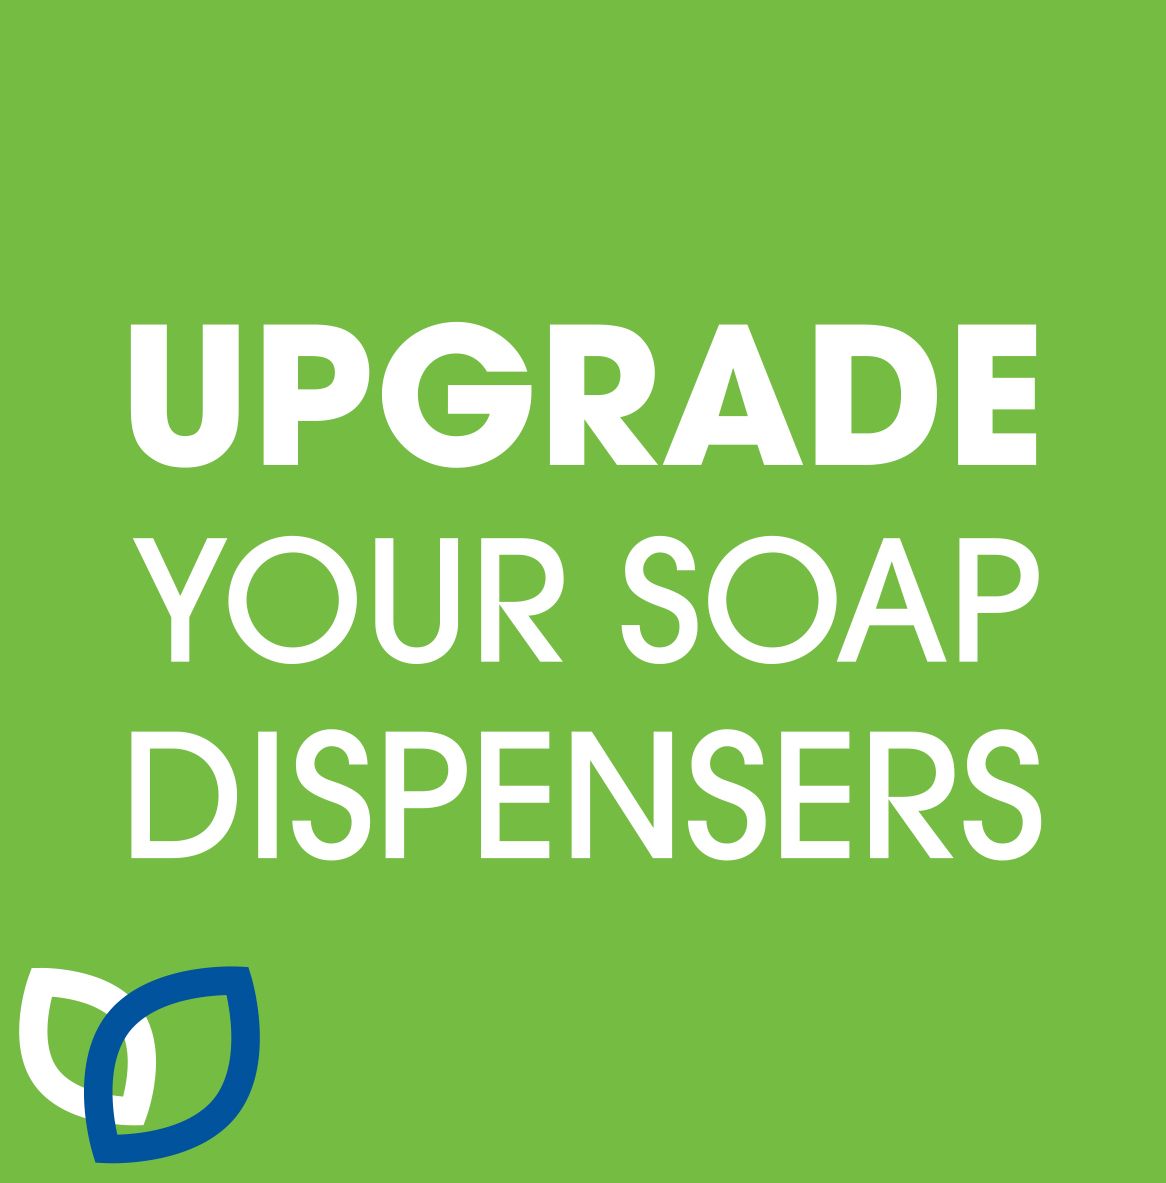 Upgrade Your Soap Dispensers